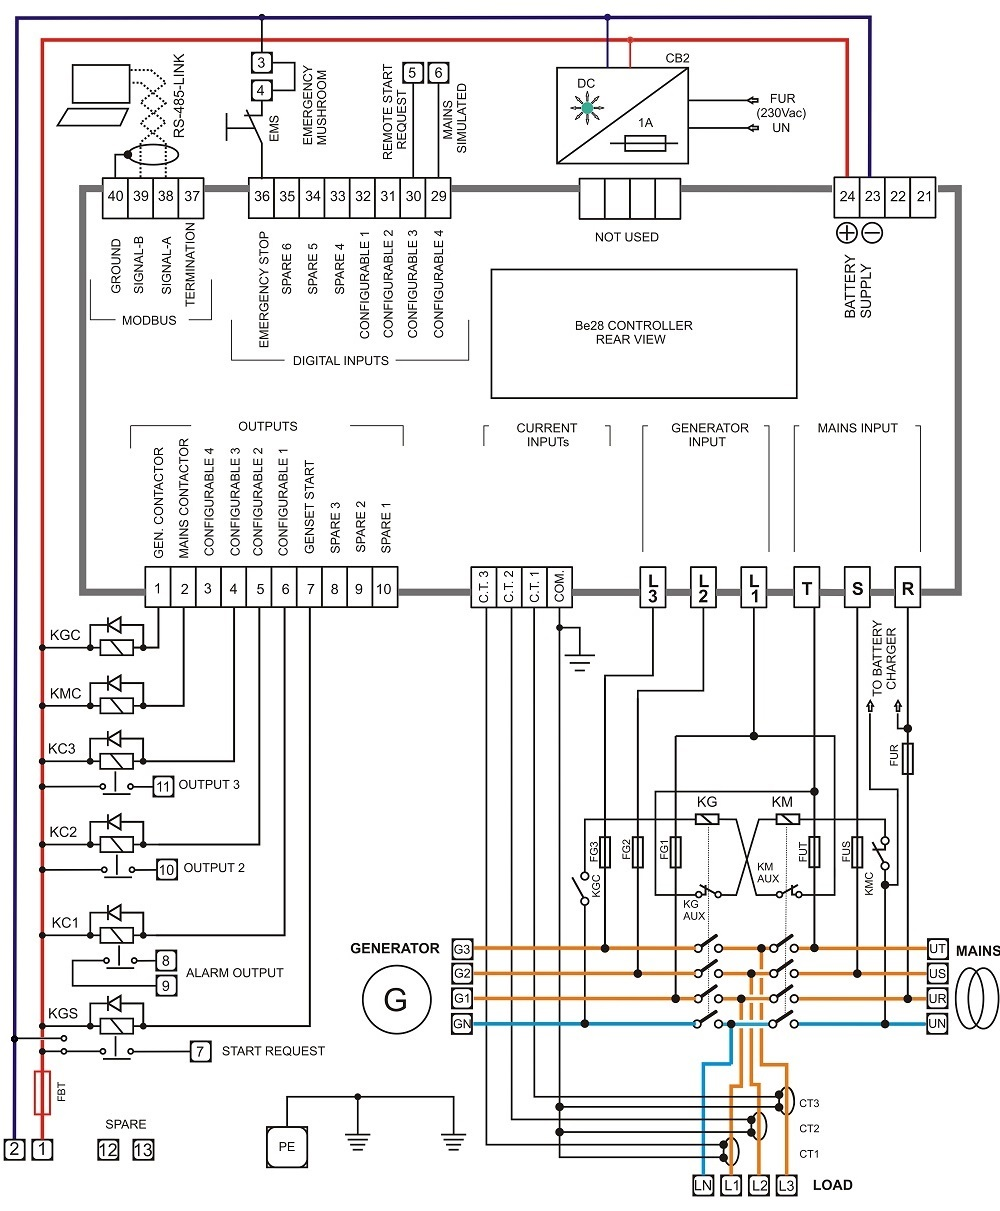 60kVA ATS PANEL WIRING DIAGRAM ats wiring diagram ats panel wiring diagram \u2022 wiring diagram  at mifinder.co